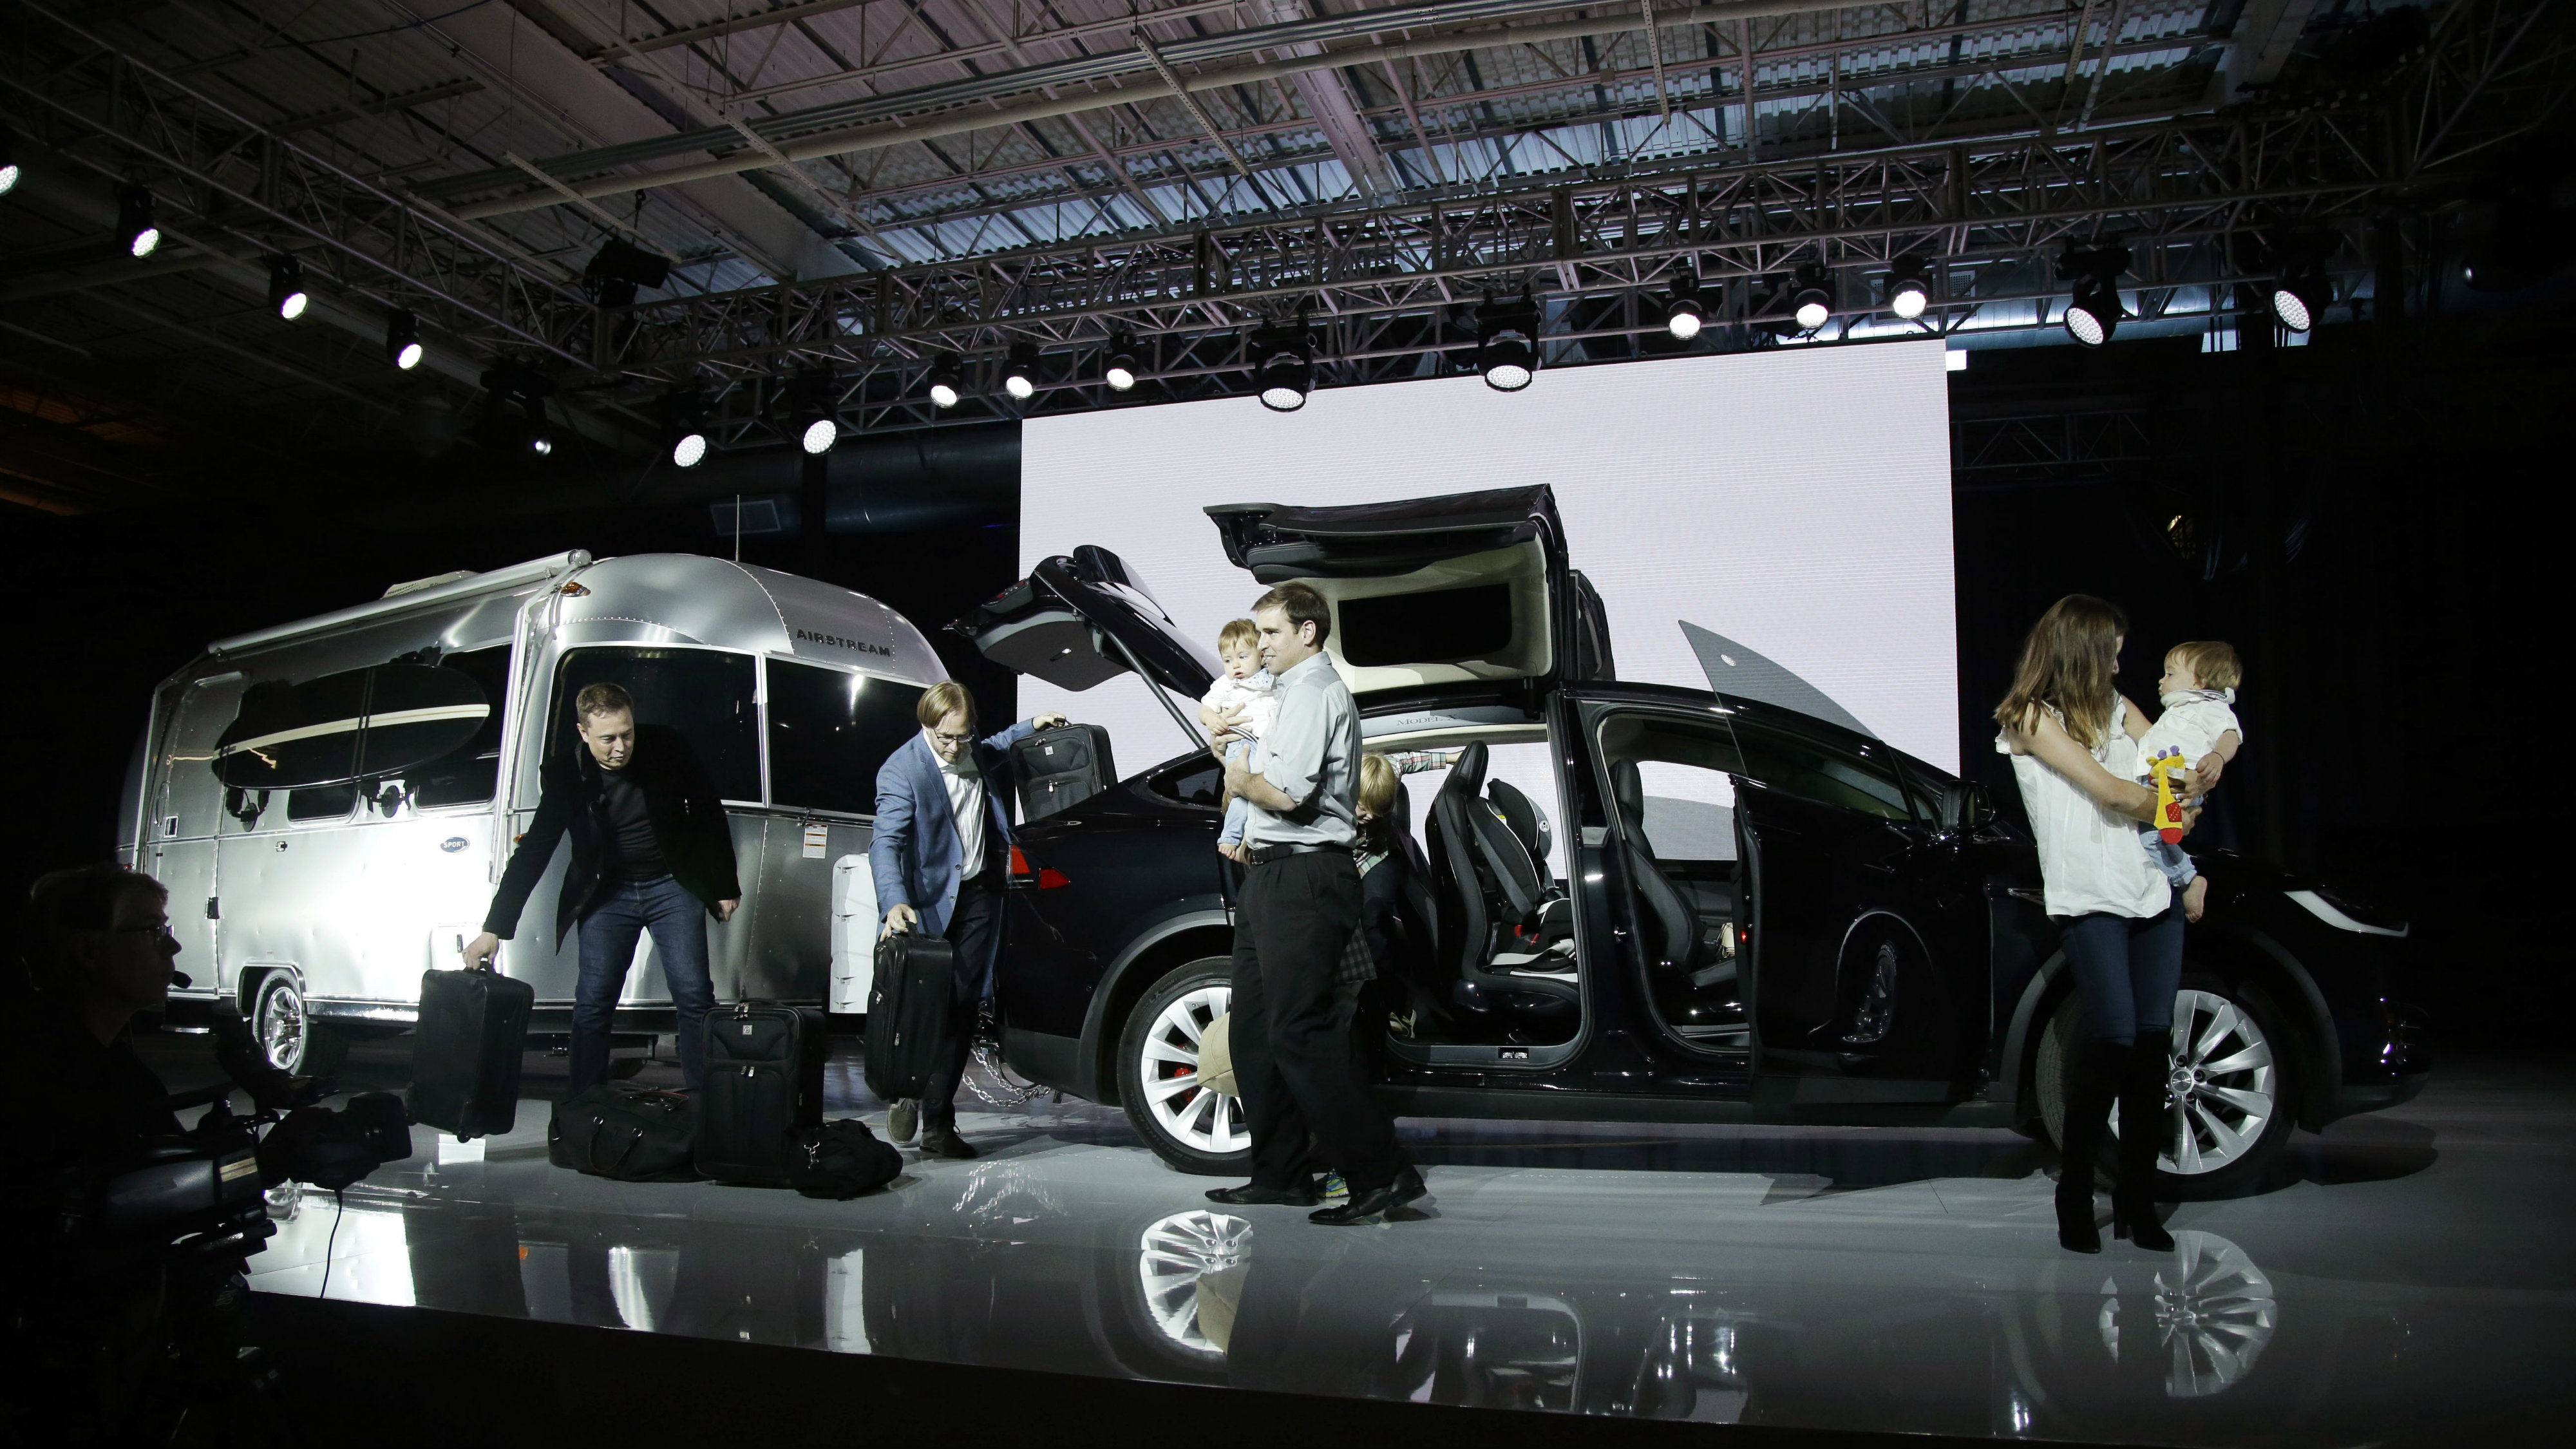 Elon Musk, CEO of Tesla Motors Inc., at left, shows the amount of cargo space on the new Model X car at the company's headquarters Tuesday, Sept. 29, 2015, in Fremont, Calif.